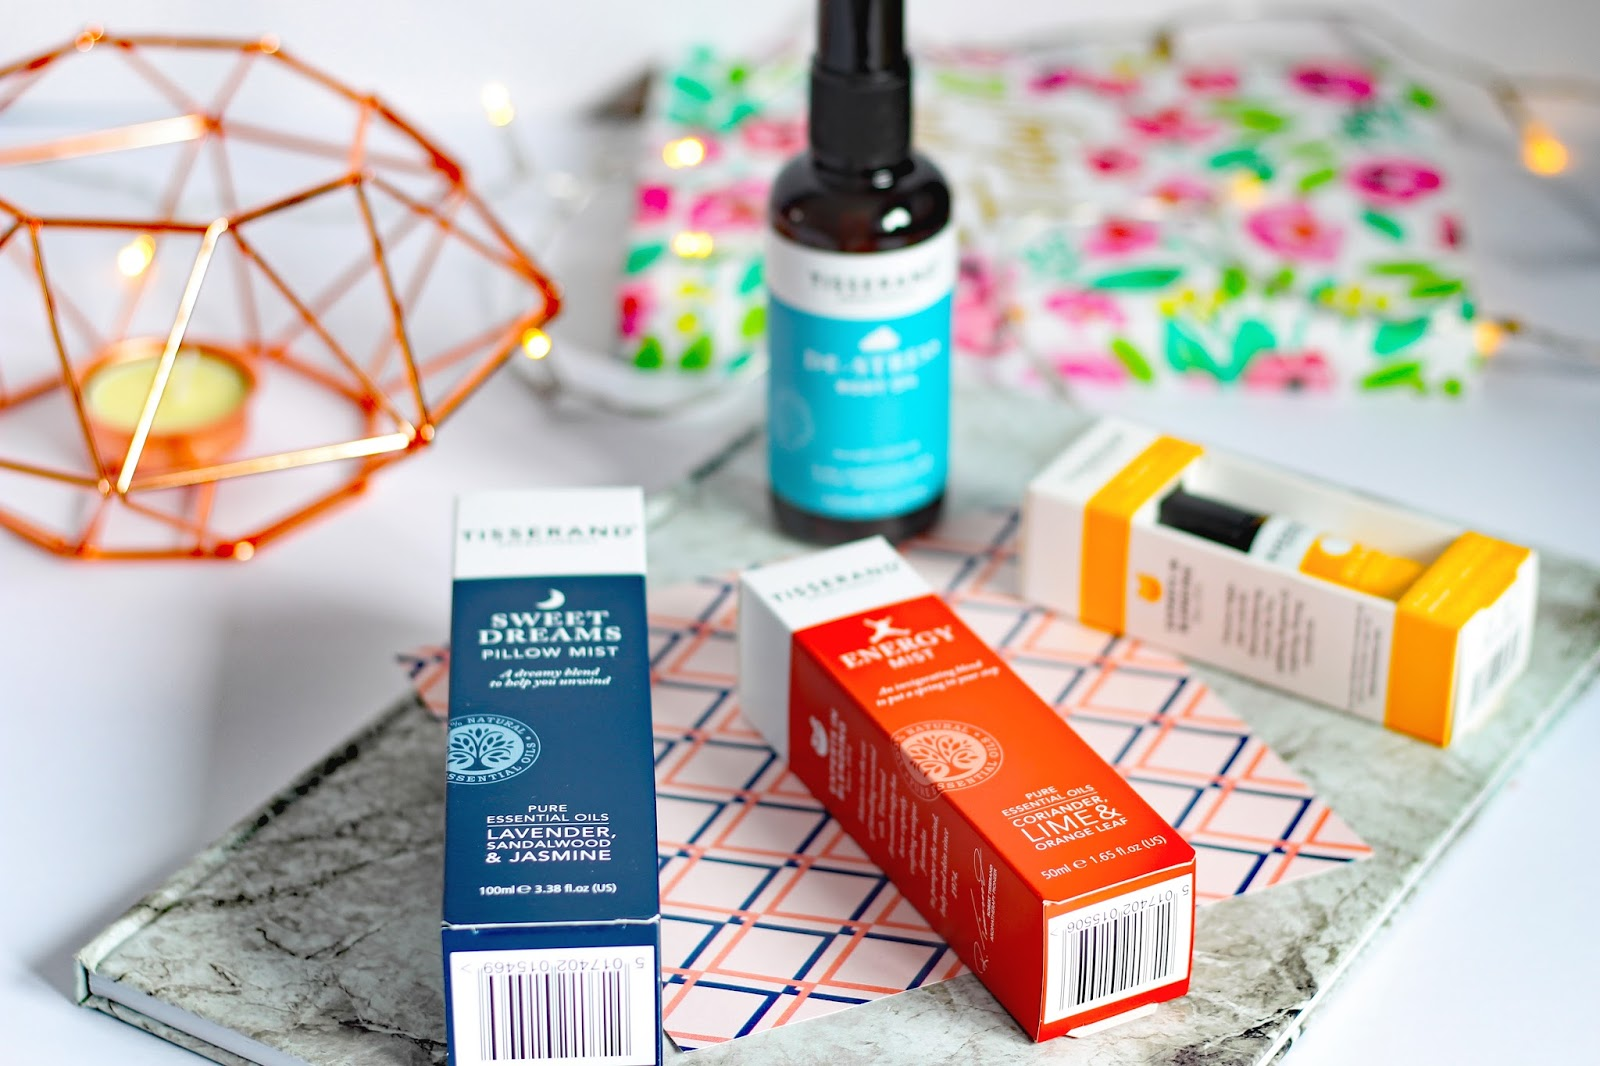 Aroma-what therapy? | Natural Ways To Improve Your Mental Health Tisserand mental illness wellbeing distress mists roller balls happiness anxiety depression vegan natural